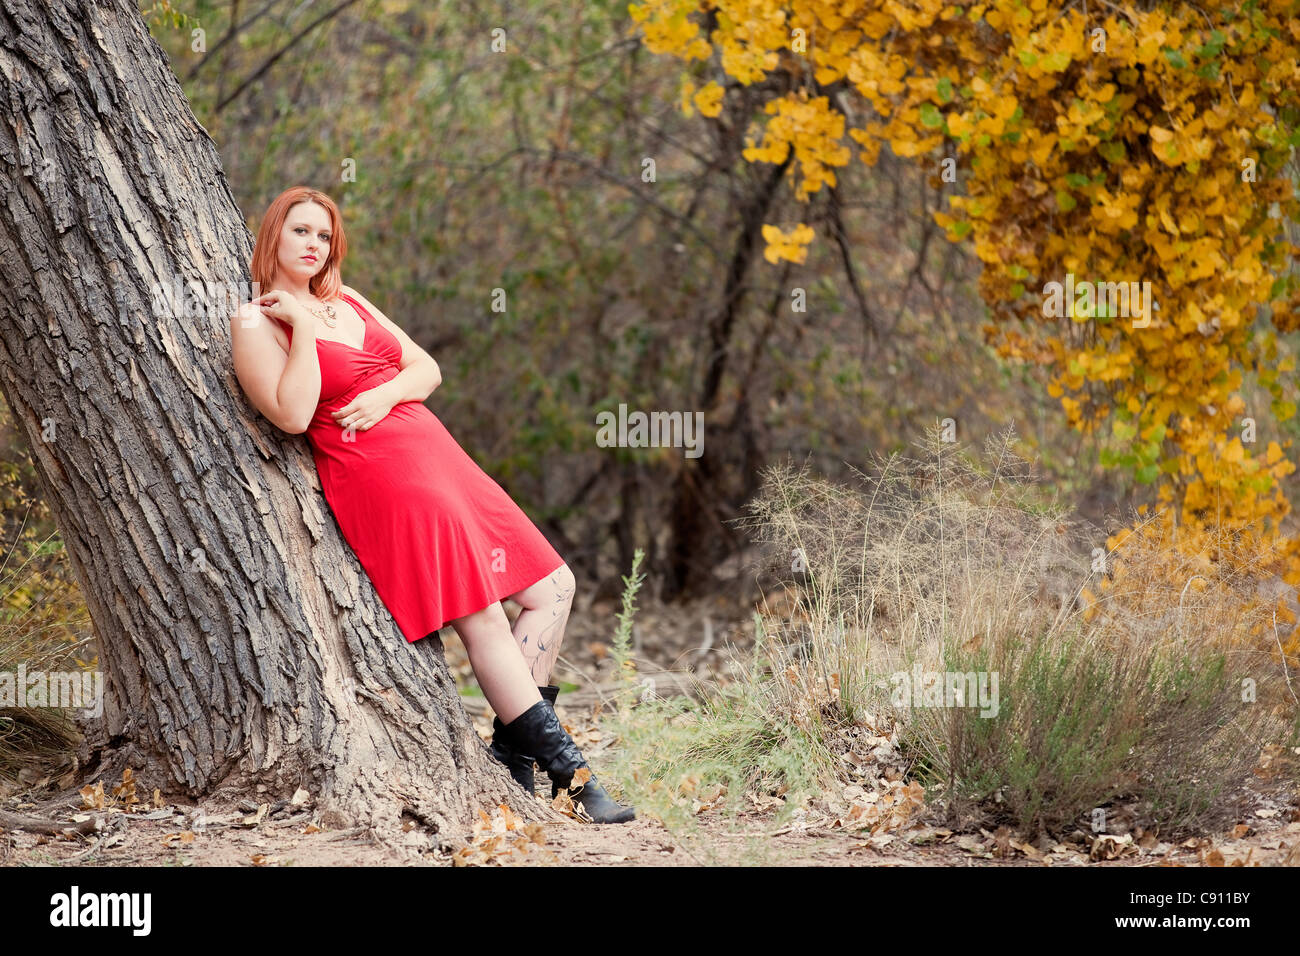 Beautiful Auburn Haired woman outdoors in nature, autumn. Stock Photo